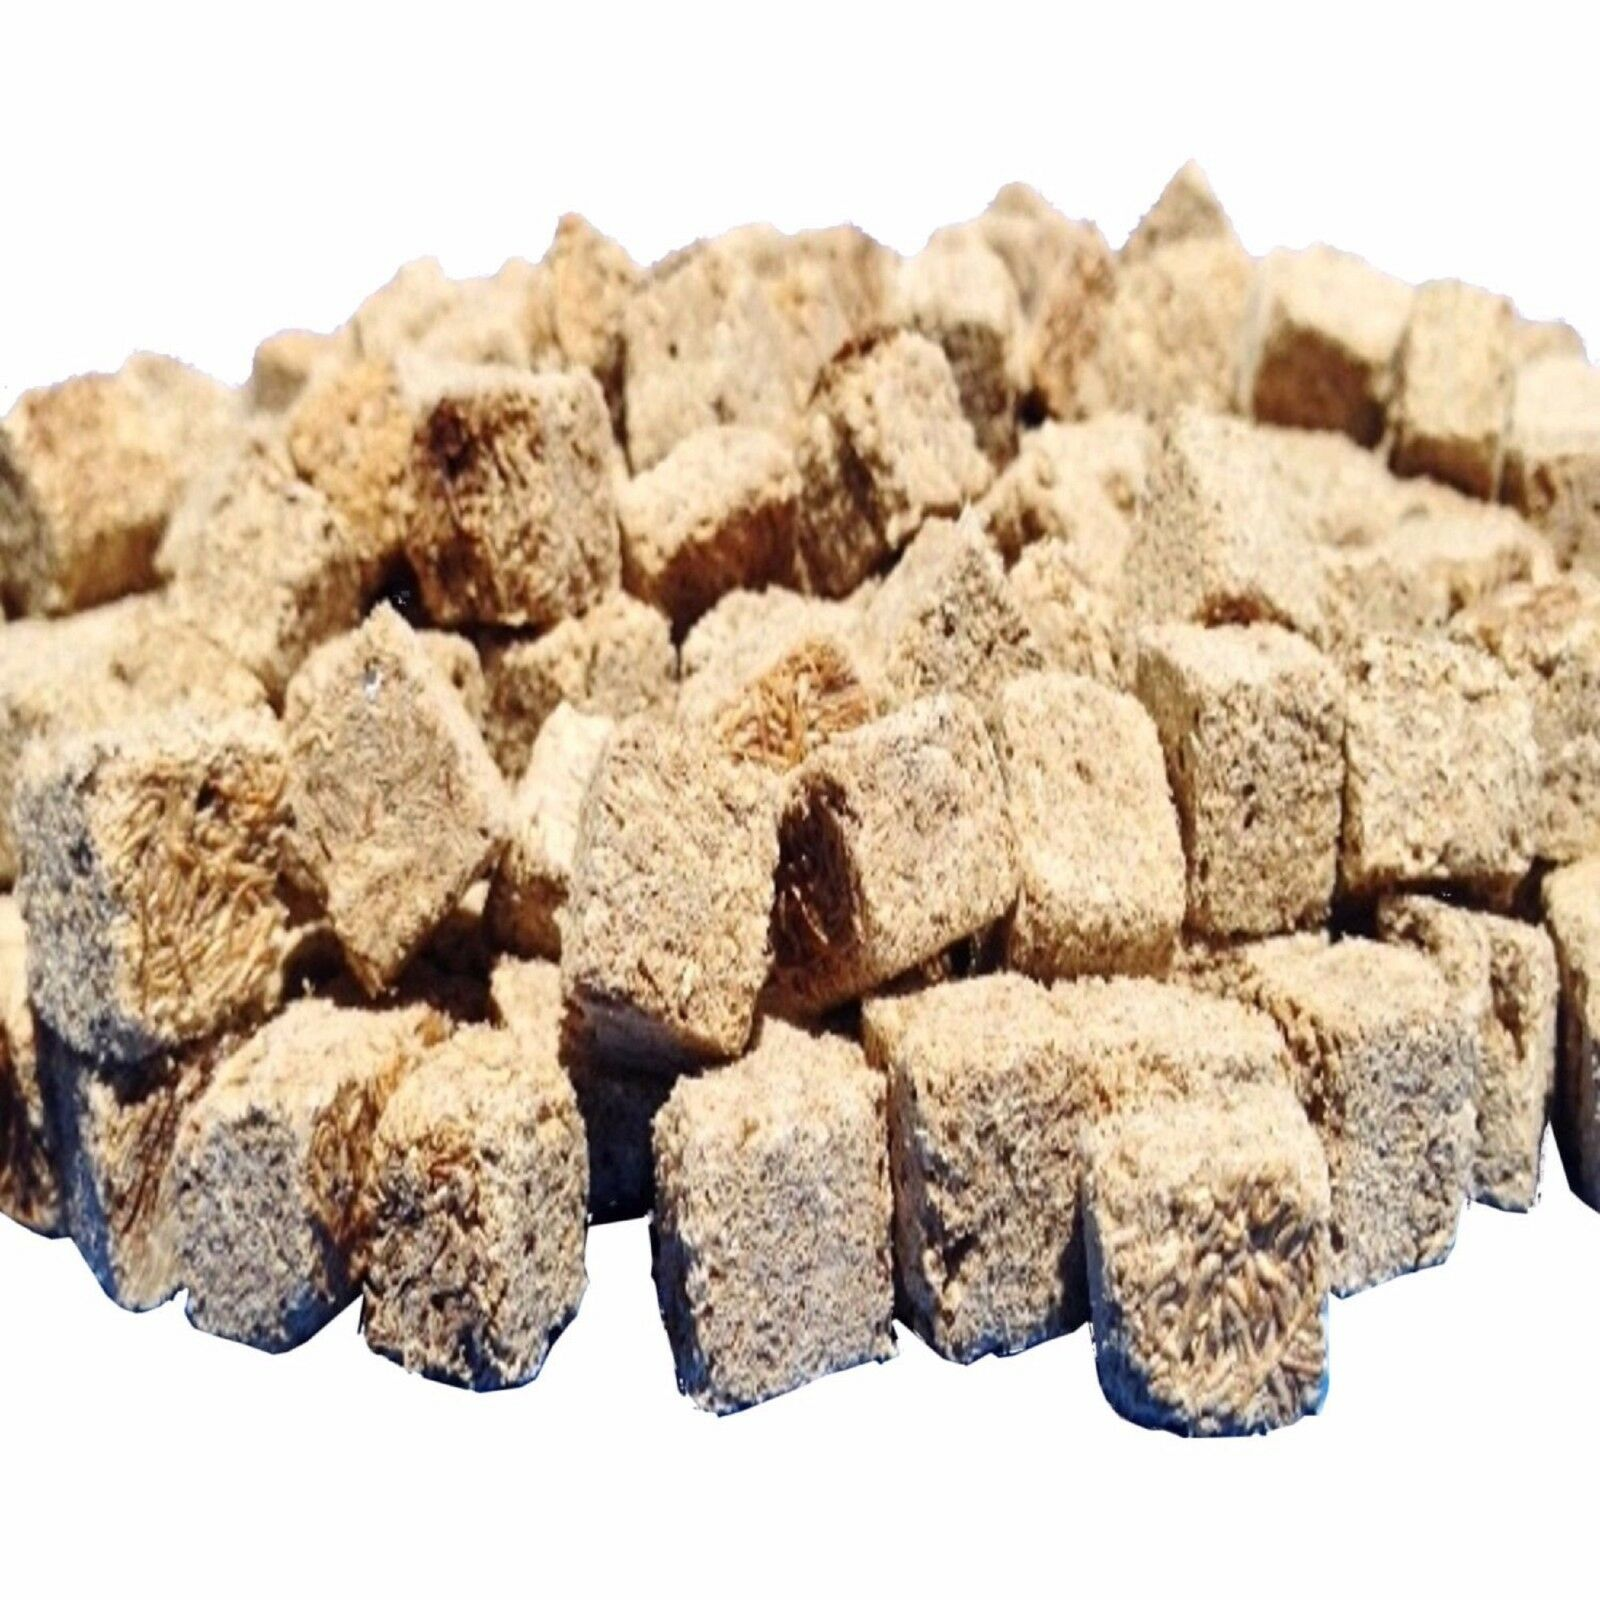 Details about Tubifex Worms--Freeze Dried in Cubes, Bulk Tropical Fish Foods